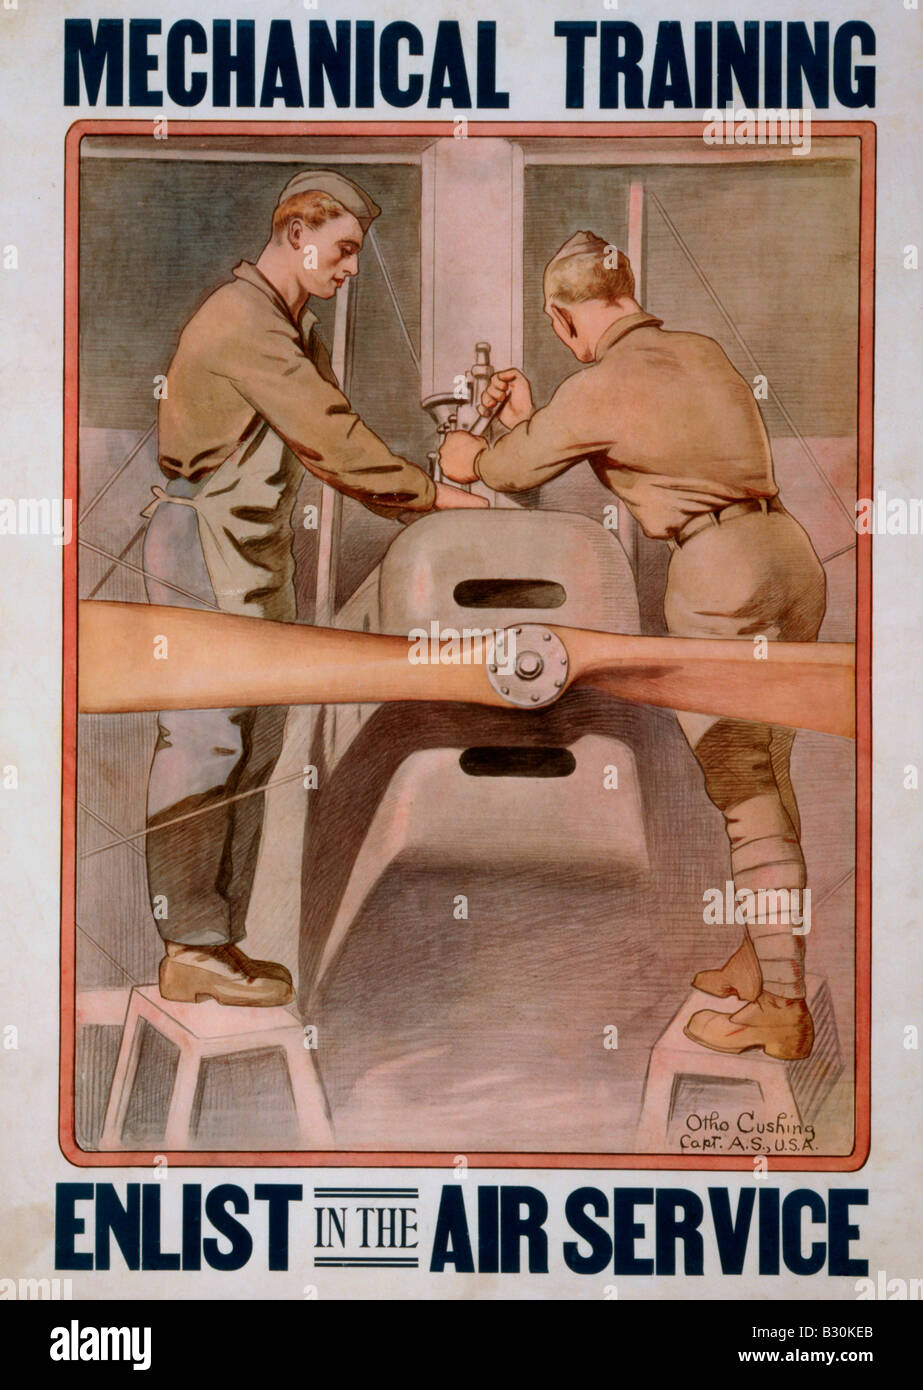 Mechanical Training - Enlist in the Air Service Recruiting Poster from World War I - Stock Image